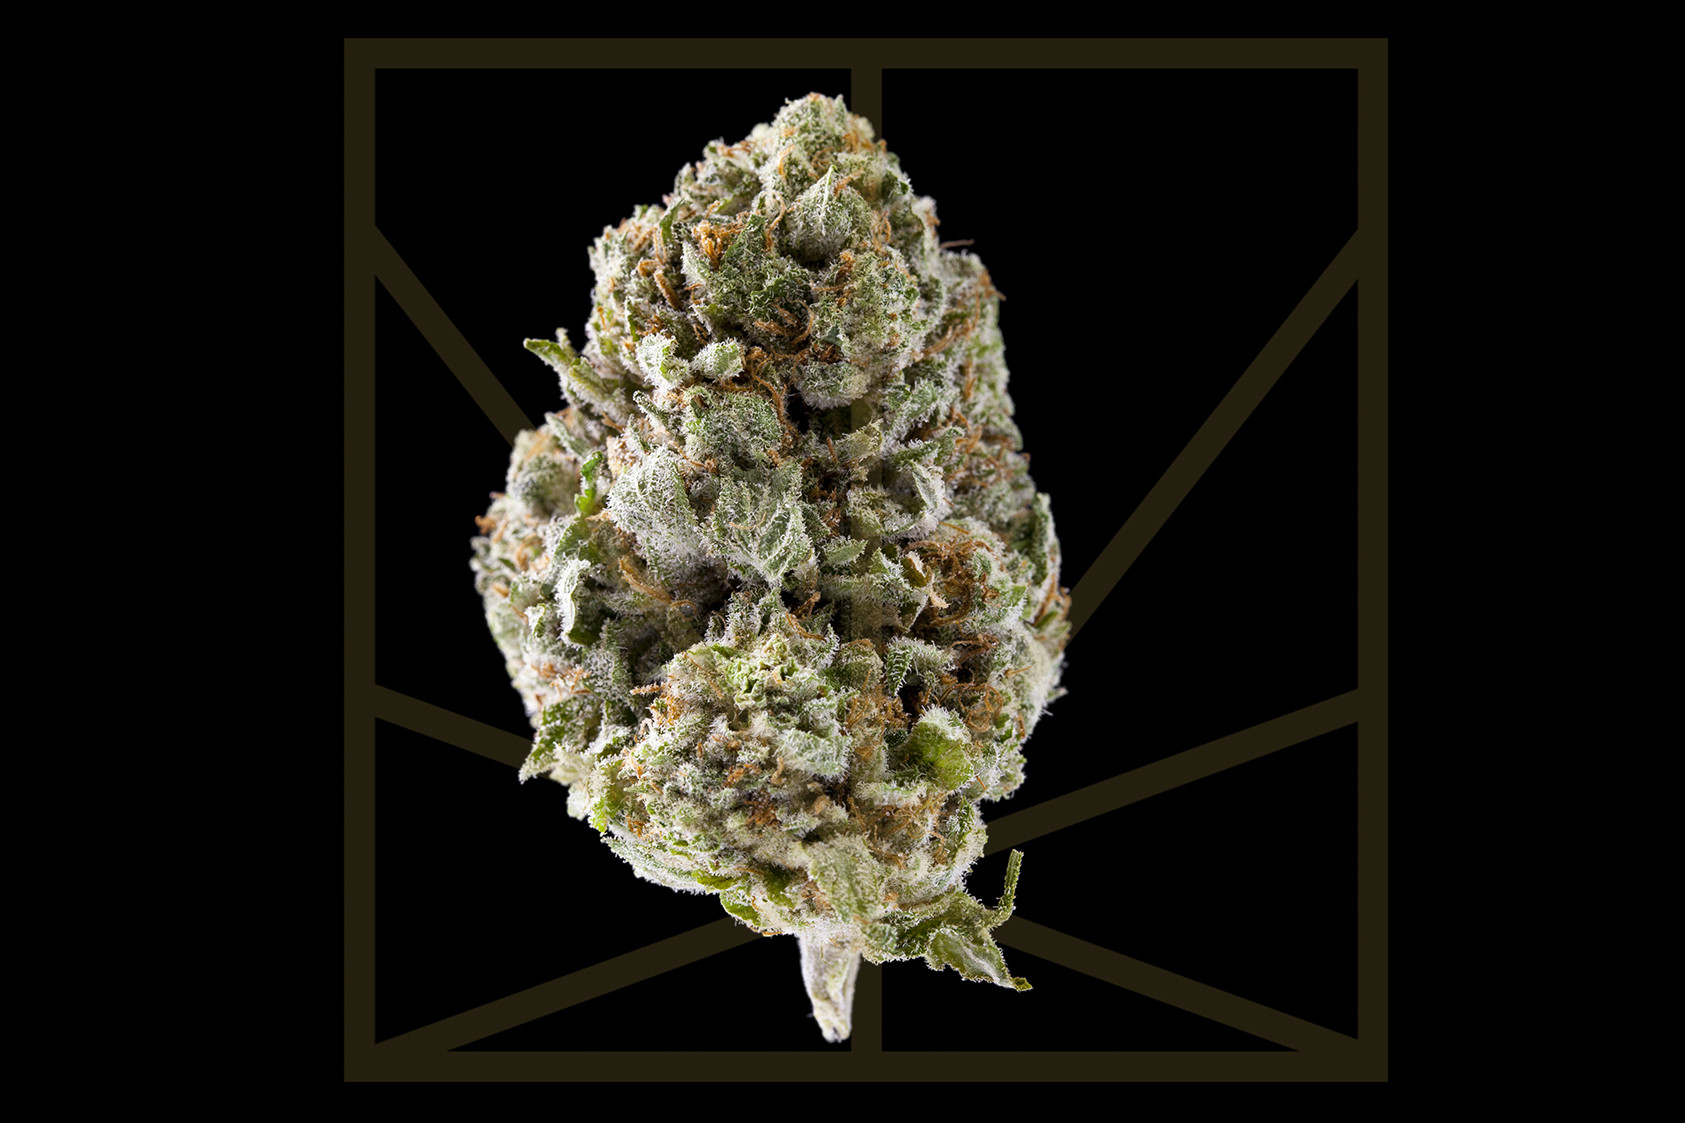 """<p><em>""""And if the stars should fall from the sky, I will put them all back in time / So you know that when they shine, they shine for you."""" </em></p>  <p>Sure, it's lacking some of the qualities often associated with purple bud but, just because Purple Alien OG doesn't smell like grape Skittles, doesn't mean this quality strain should be overlooked. Purple Alien OG is a happy and giggly cross between Las Vegas Purple Kush and Alien OG. Be sure to """"Look Up"""" and take in the sky while experiencing this euphoric high. This fast-acting hybrid provides a relaxed body high that obliterates pain and muscle tension. The cerebral energy Purple Alien OG provides is enough to keep you social in a relaxed environment but probably not enough to keep you alert during the workday. Netflix and chill, anyone?<br /> <br /> </p>"""